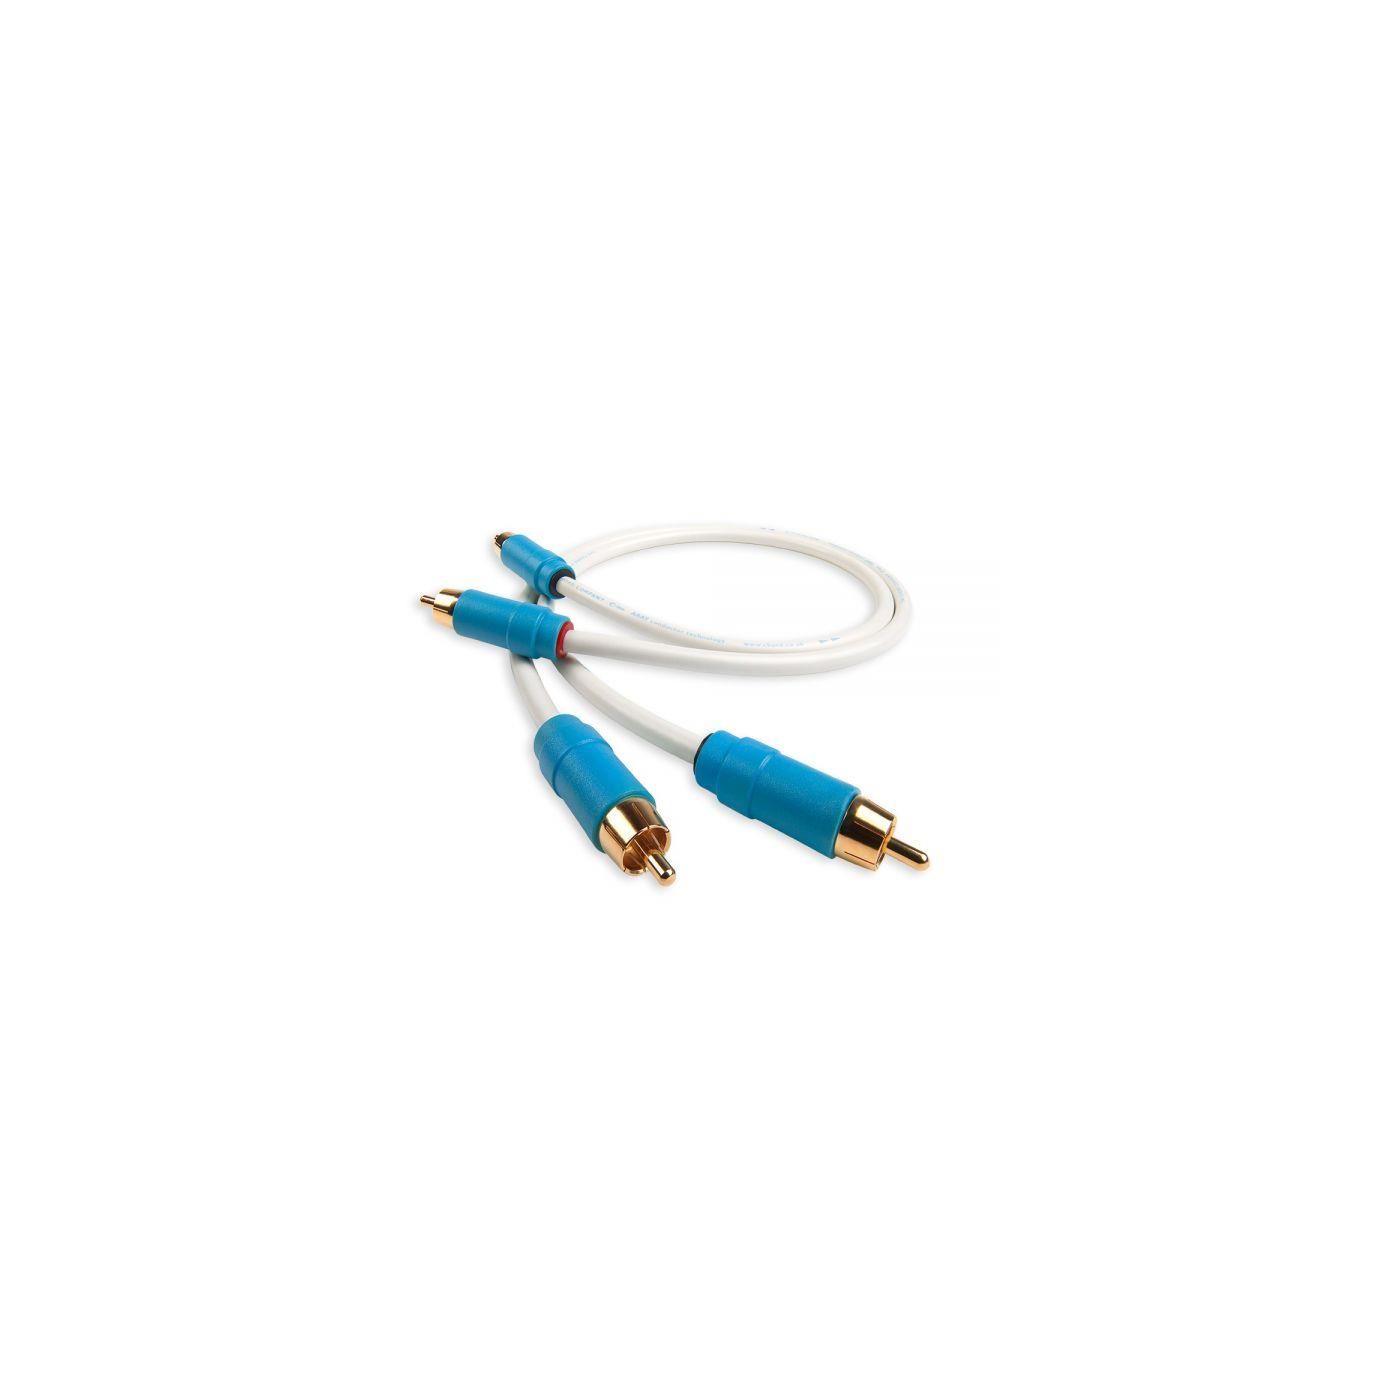 5500051  LIN0005 Chord C-Line 2RCA to 2RCA 1m Signalkabel RCA